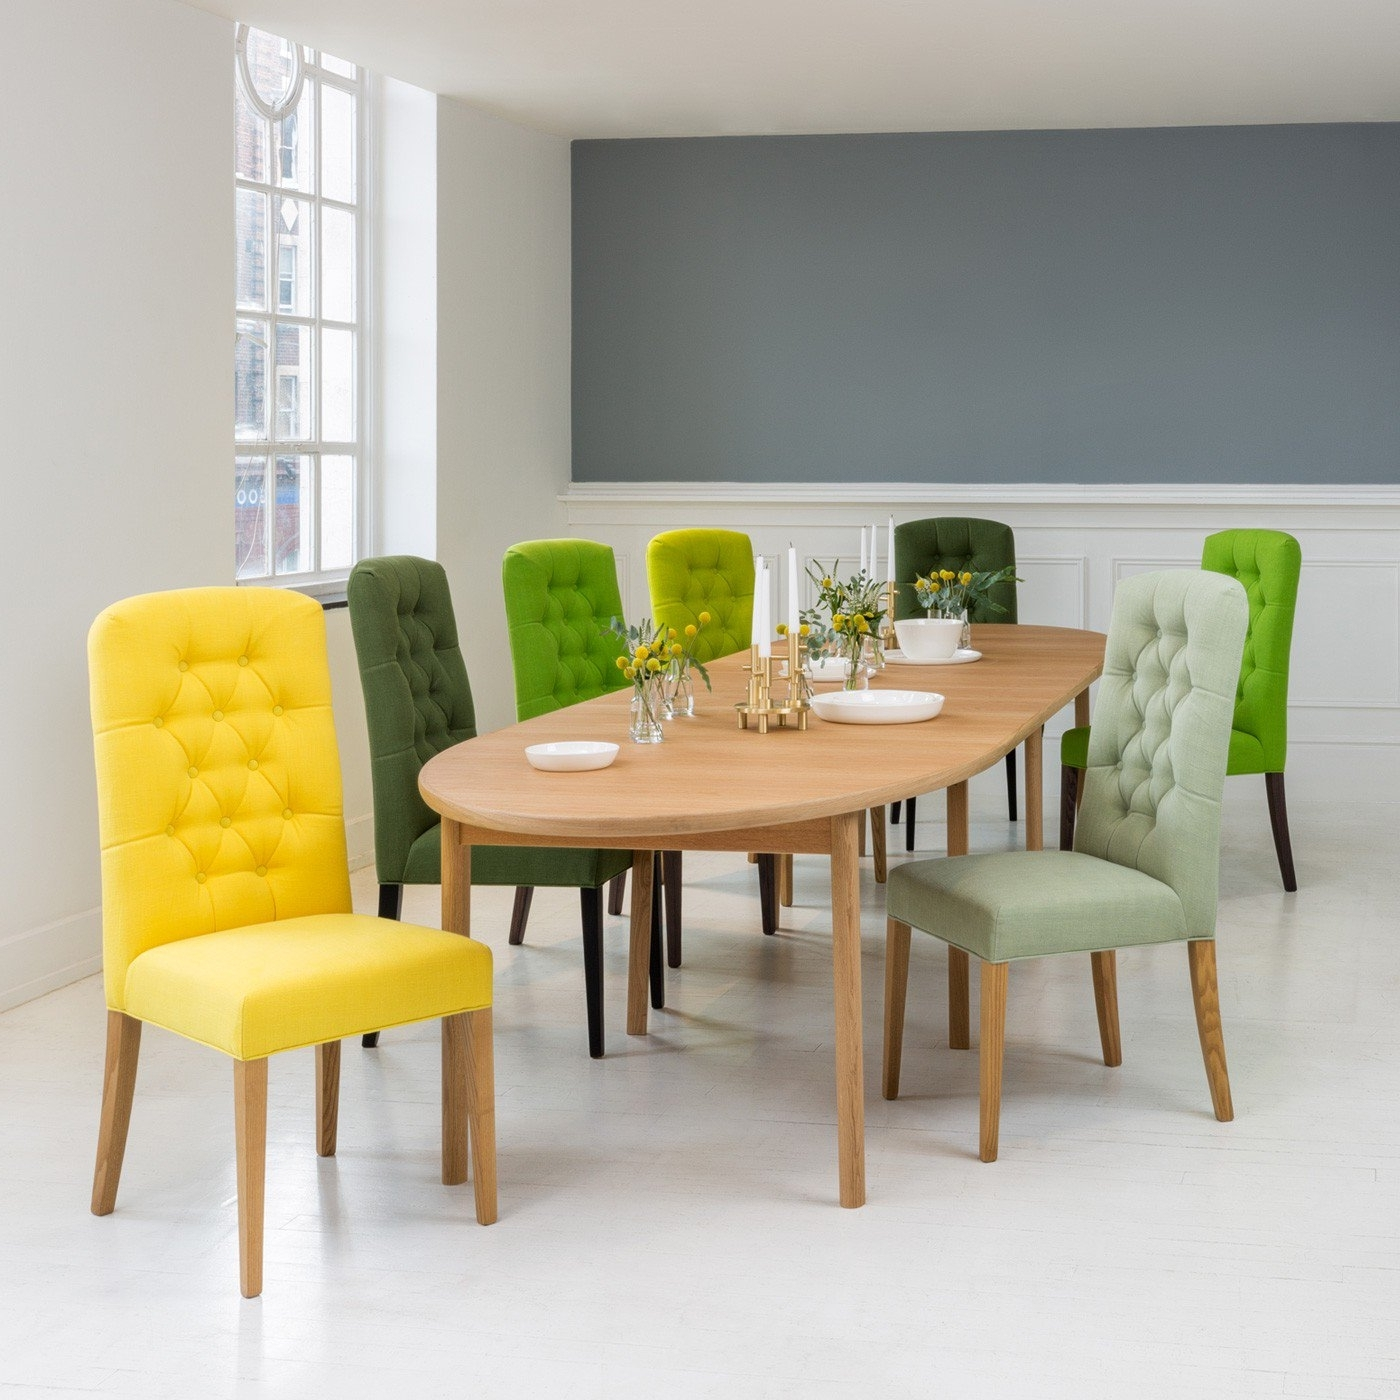 Newest 10 Seater Dining Tables And Chairs For Heal's Ellipse Extending Dining Table 6 – 10 Seater (View 3 of 25)